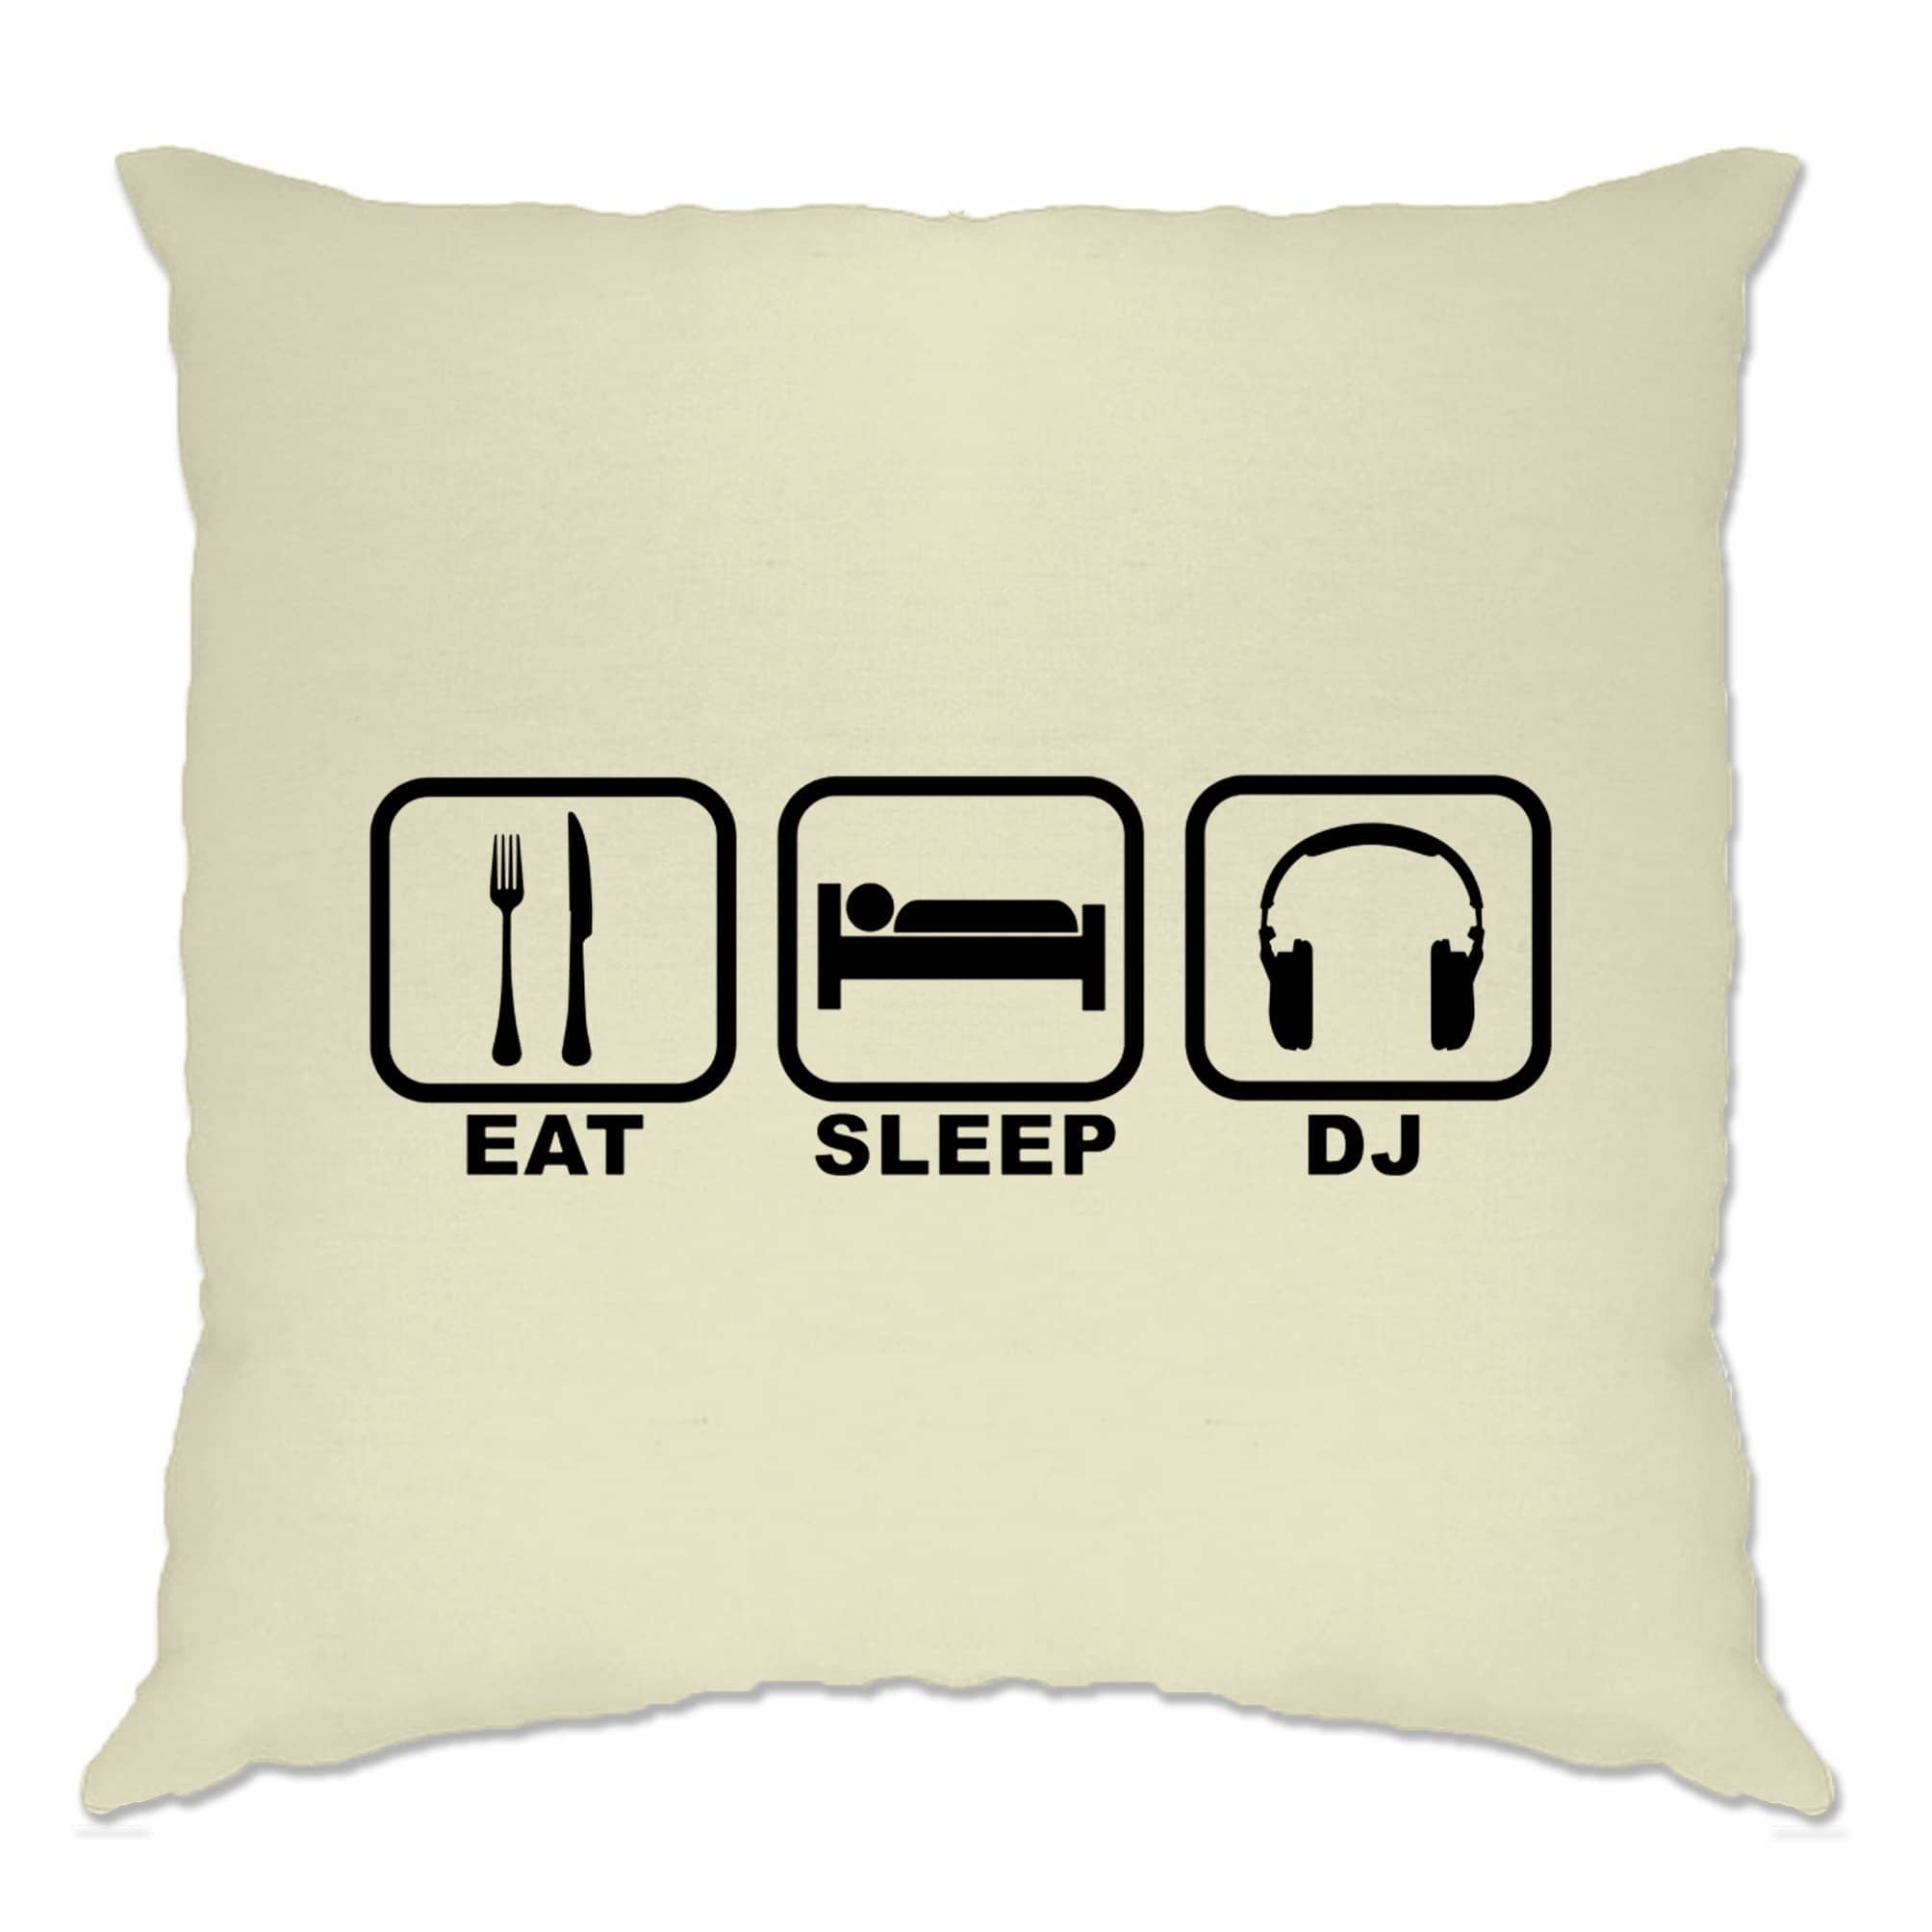 Novelty Cushion Cover Eat, Sleep, Then DJ Symbols